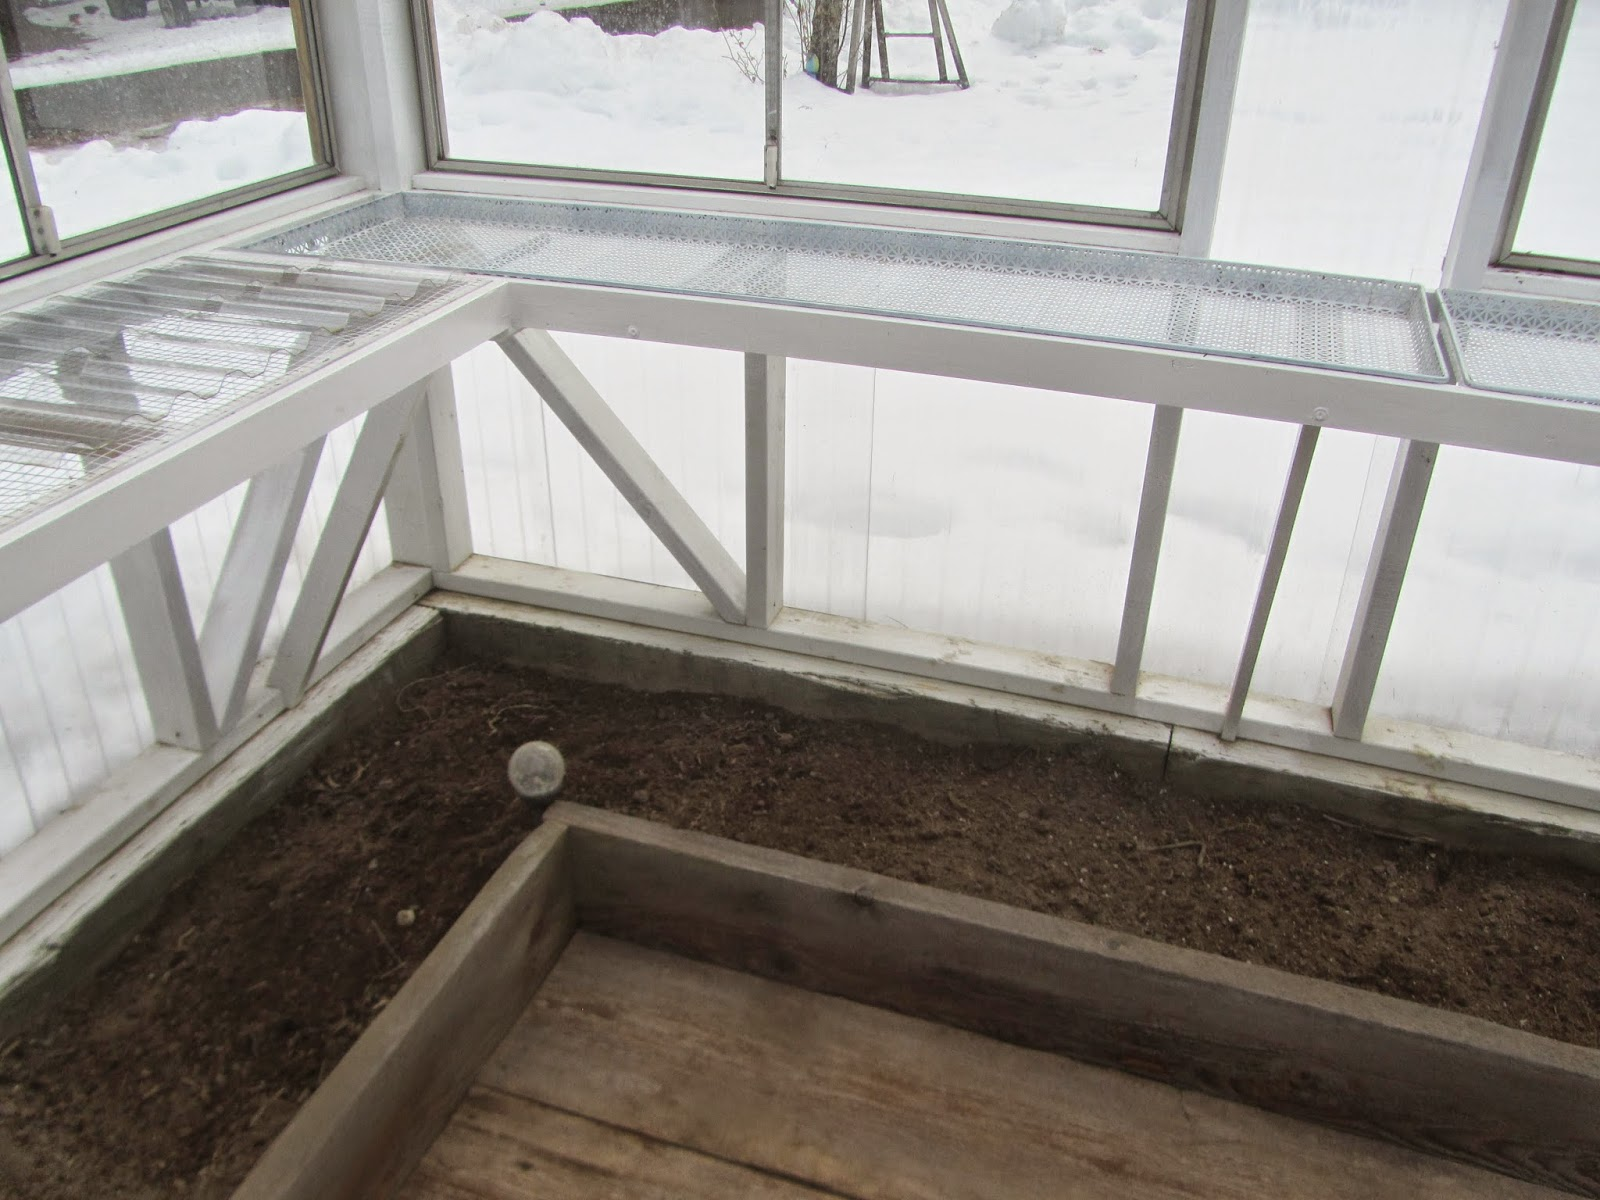 raised beds inside the unheated greenhouse